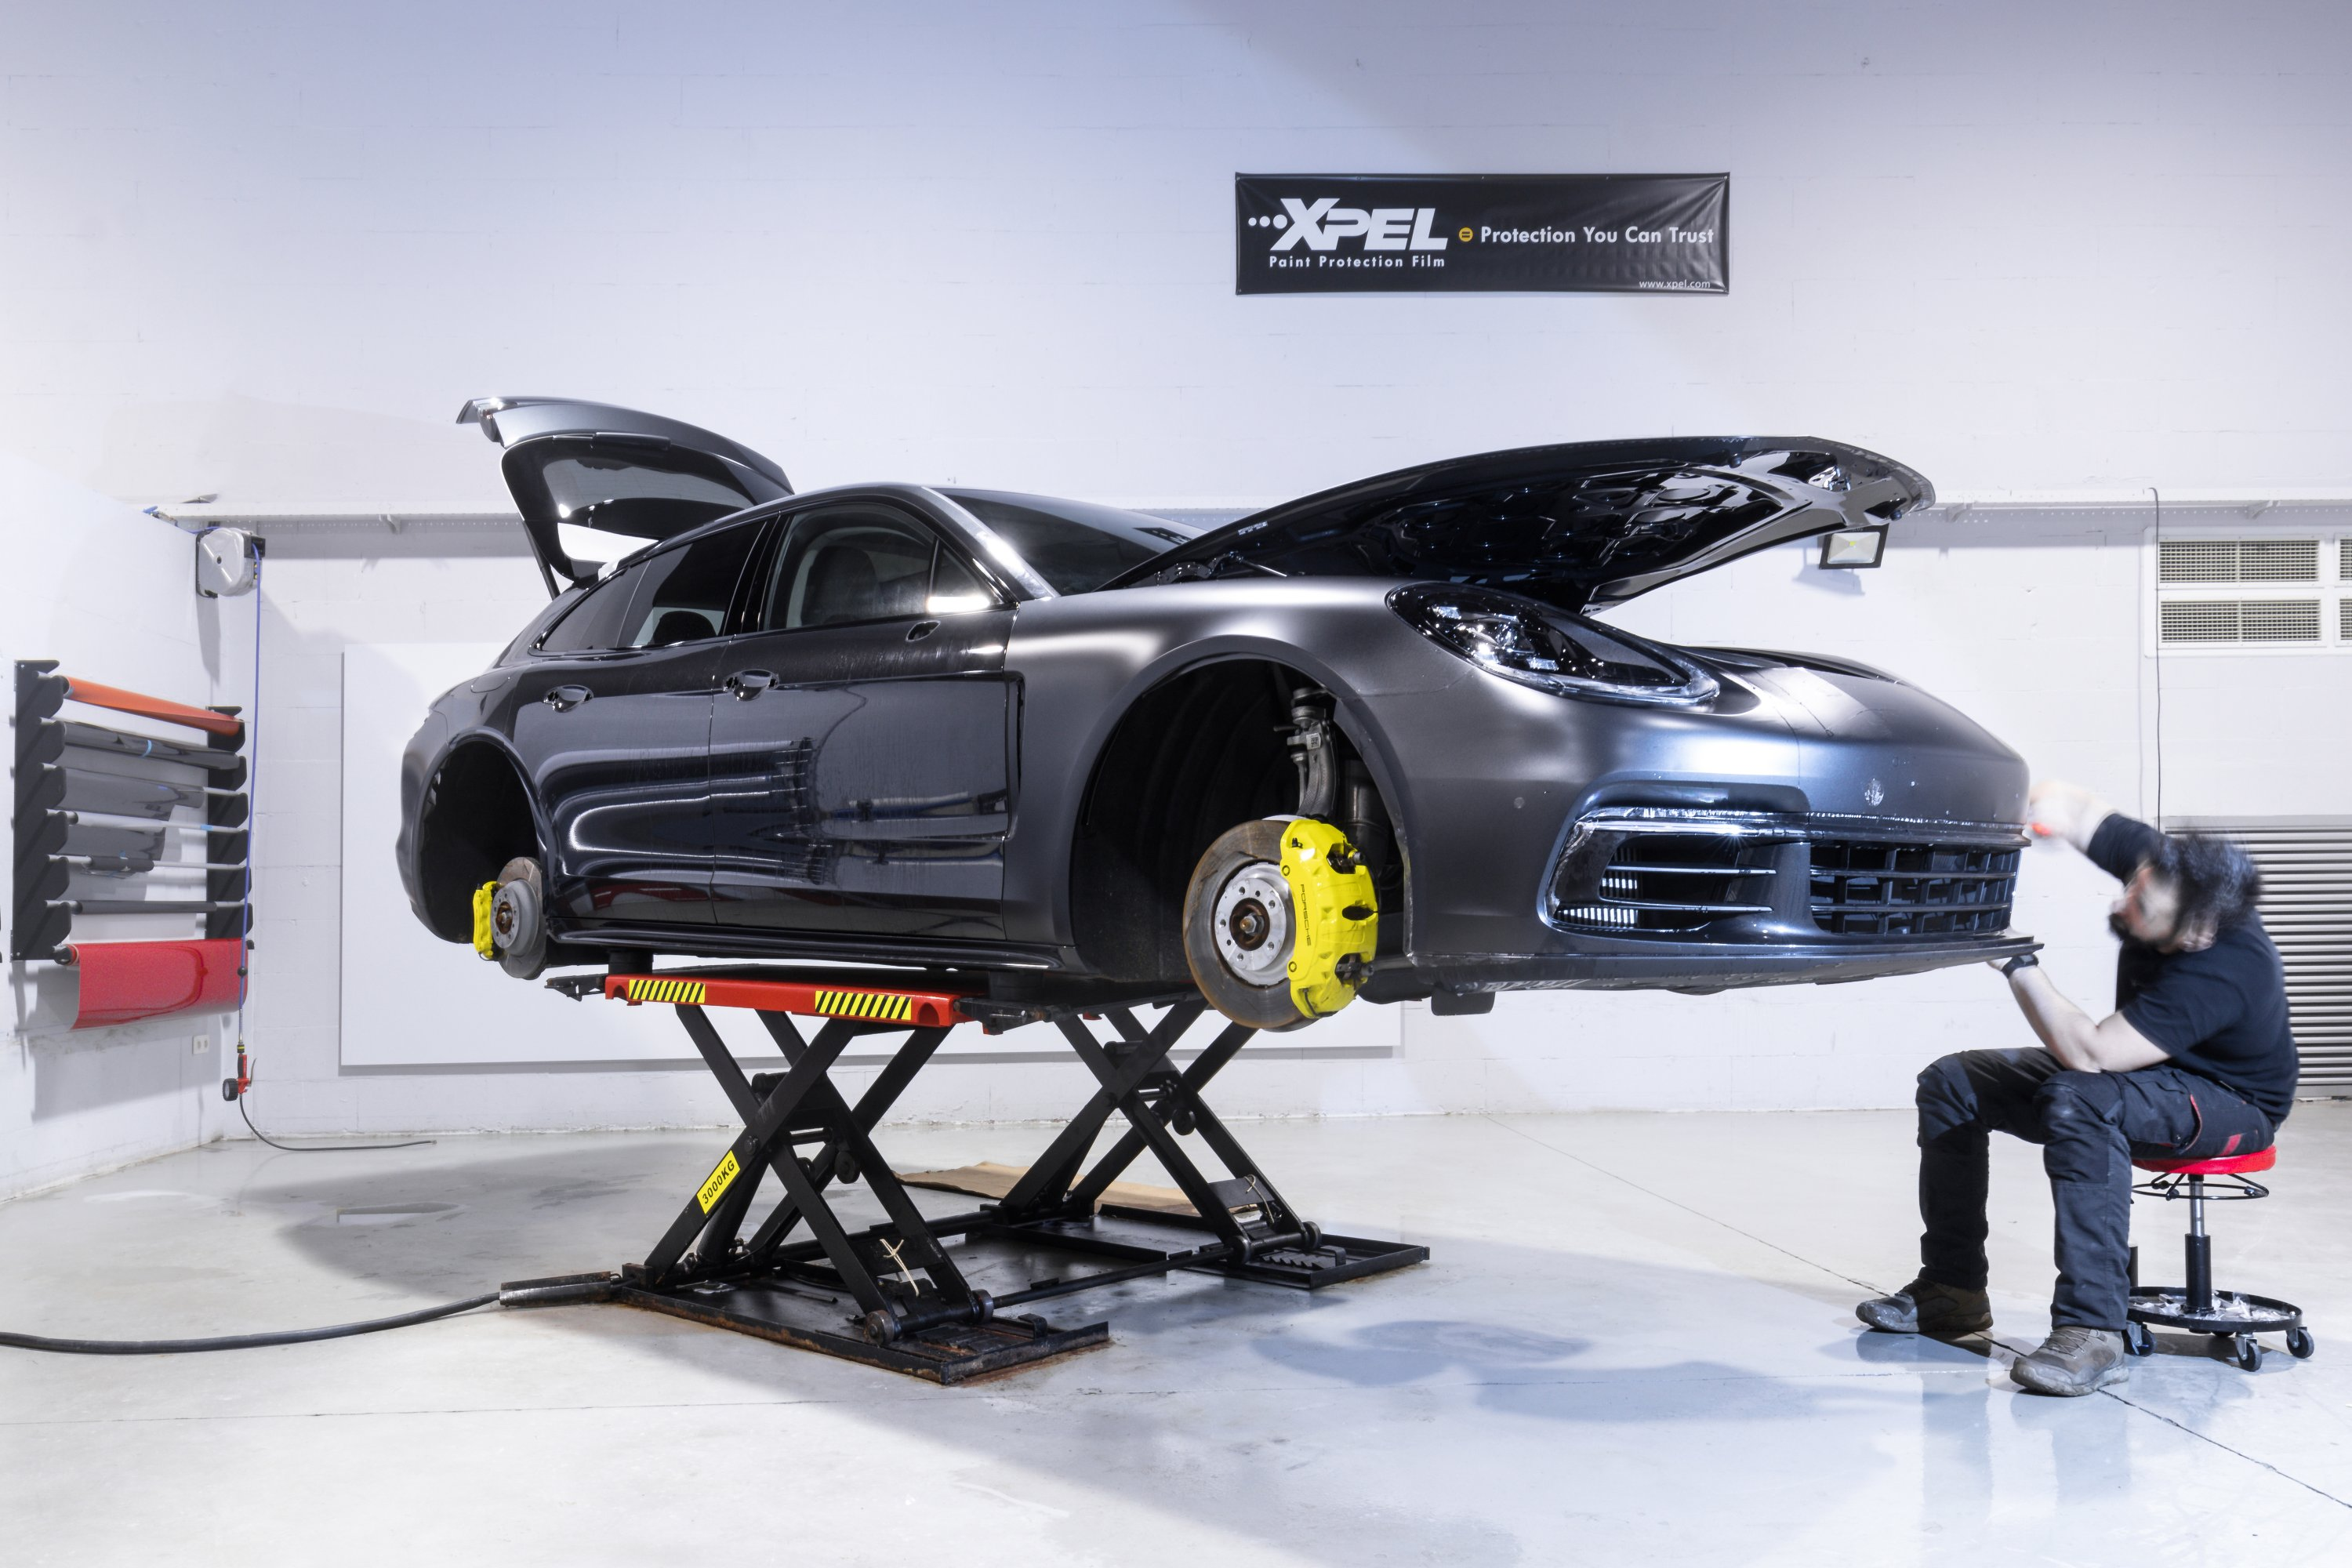 WAX-IT Detailing PPF Studio Porsche Panamera